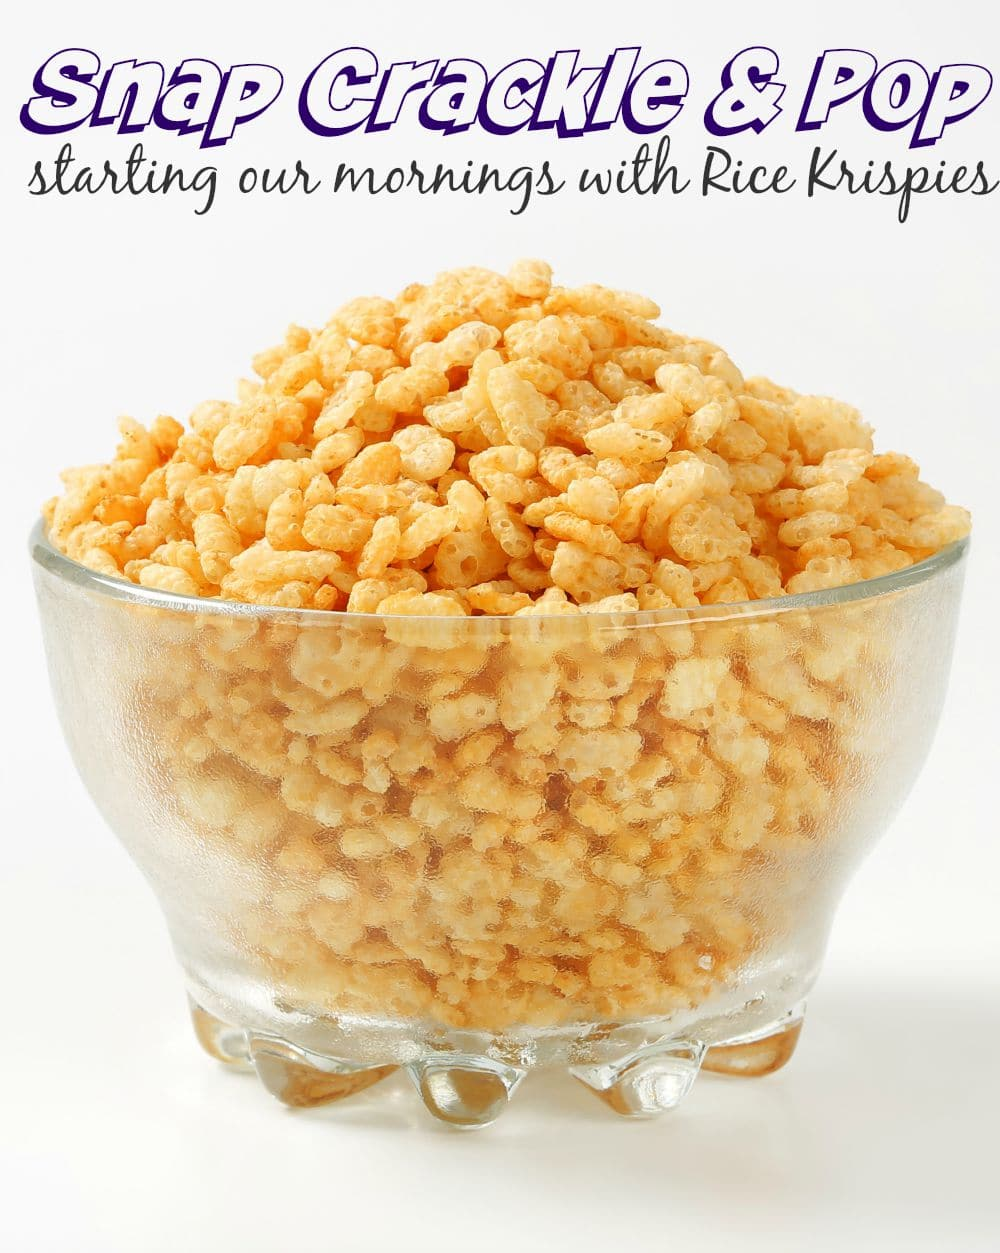 Snap Crackle Pop! The Sound of Our Mornings #MomsJustKnow